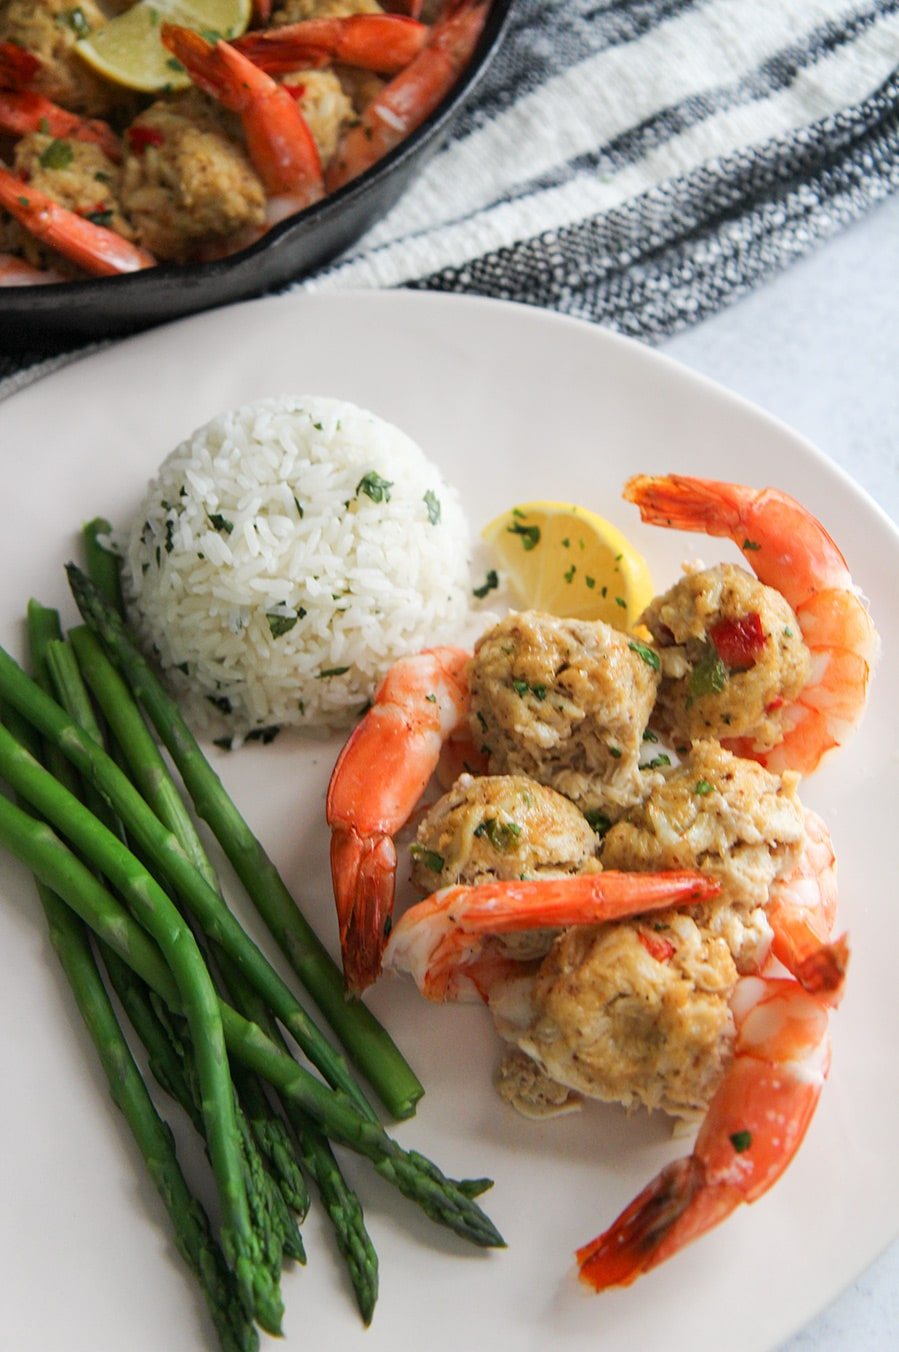 white rice, asparagus, and stuffed shrimp on a white plate.